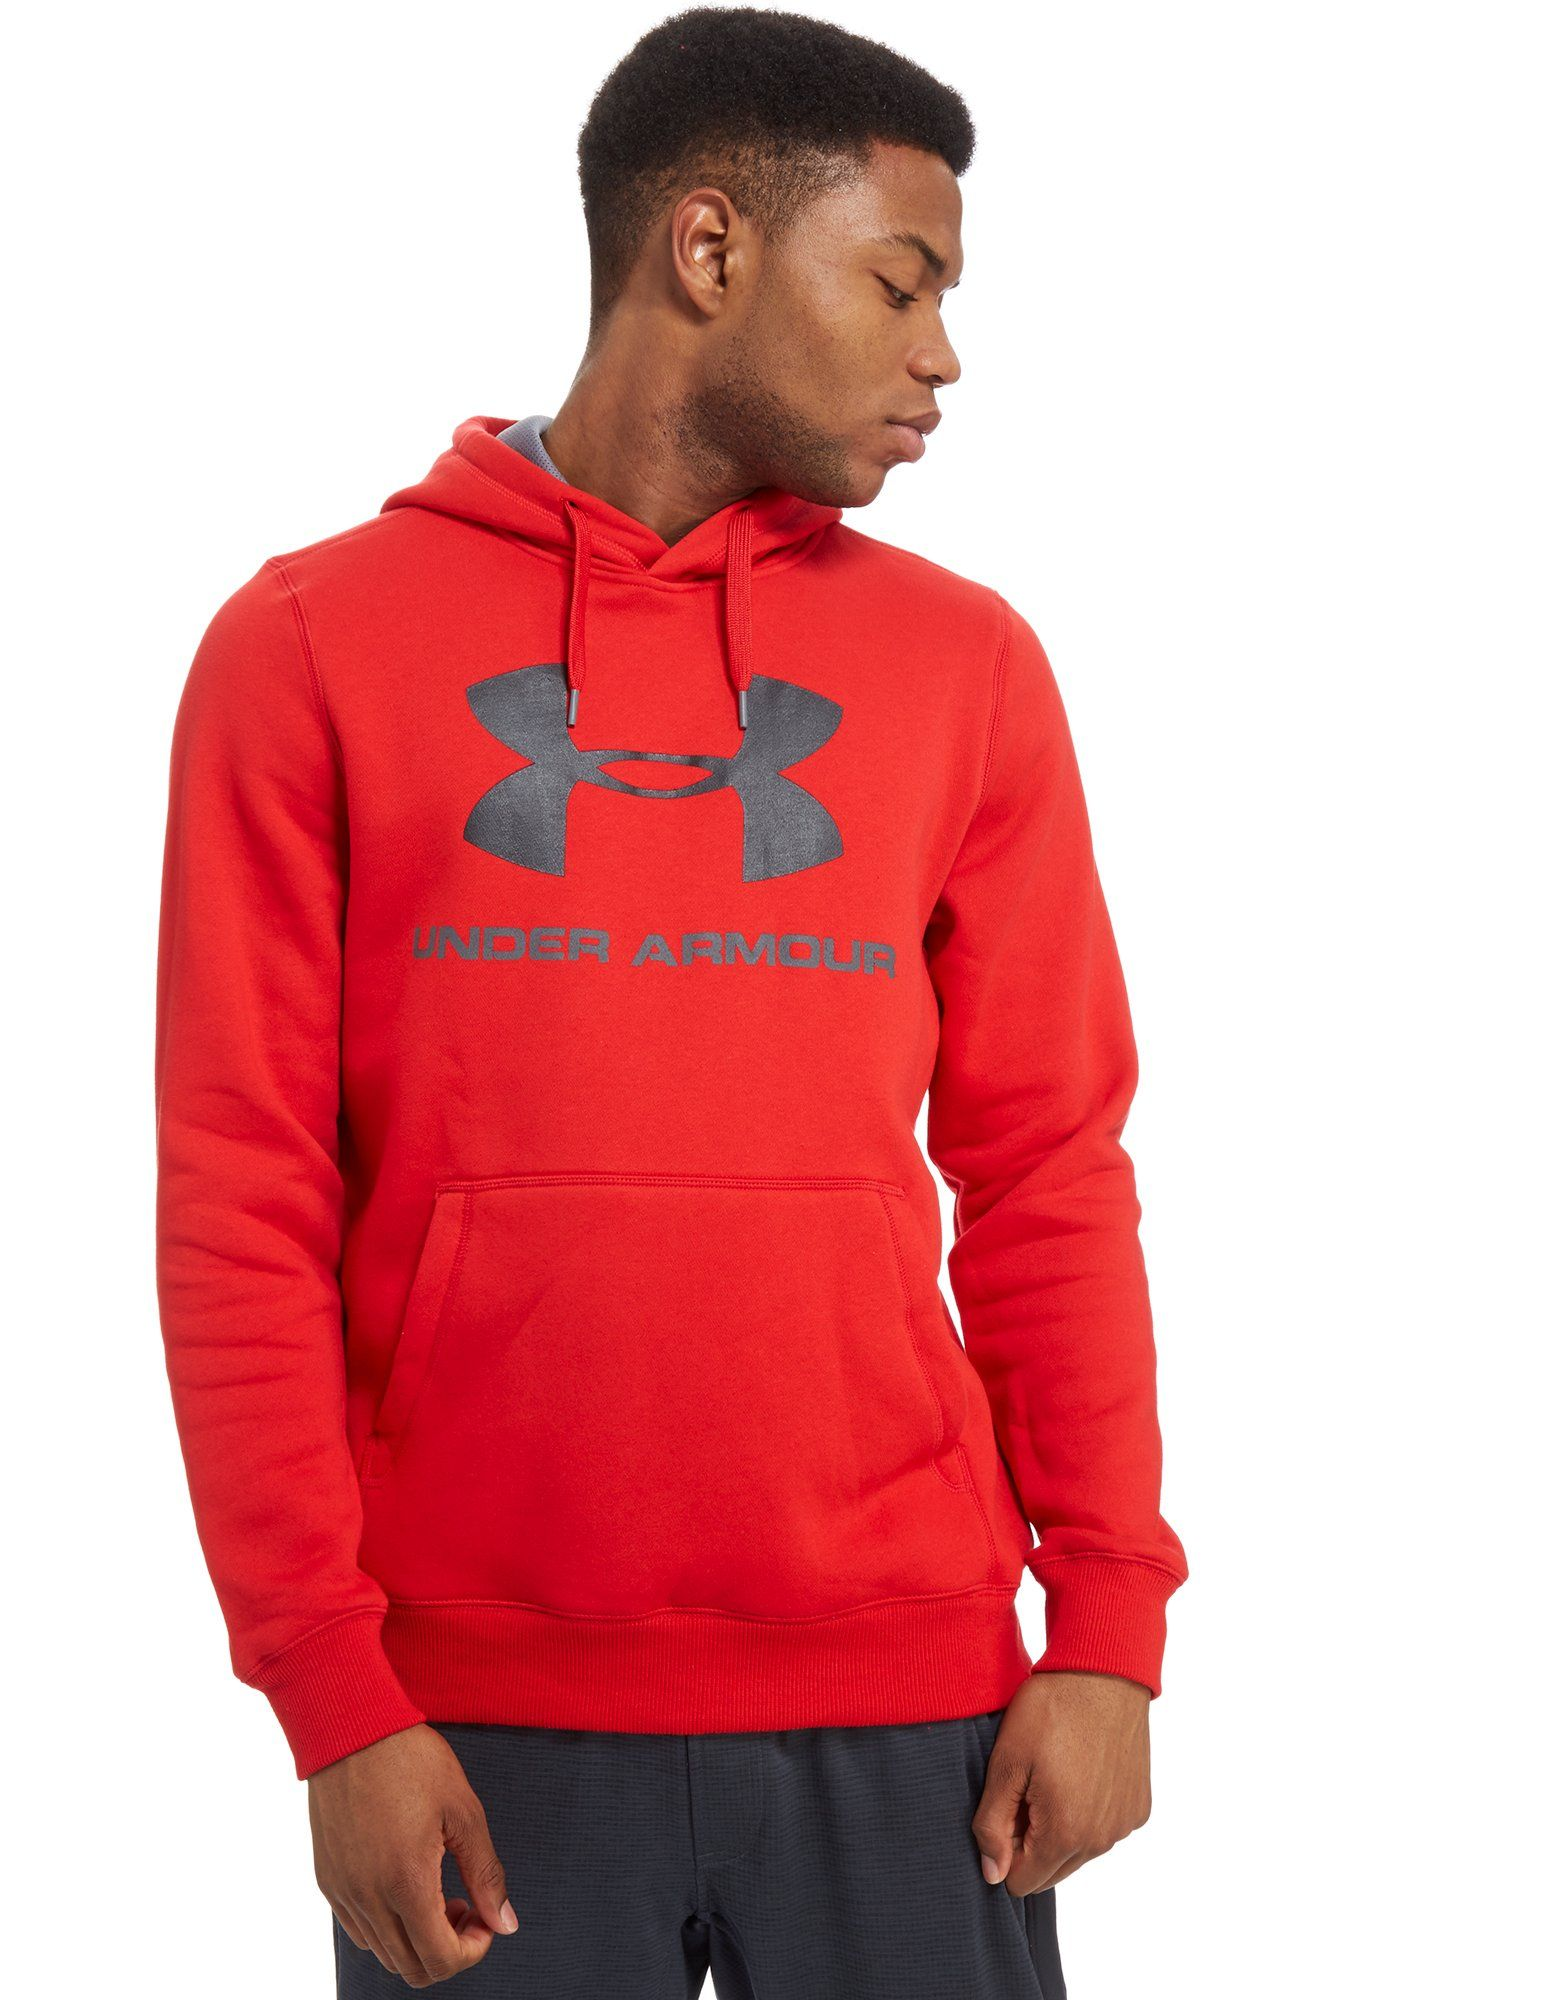 179b7da84 Under Armour Rival Fleece Graphic Hoodie | JD Sports Ireland